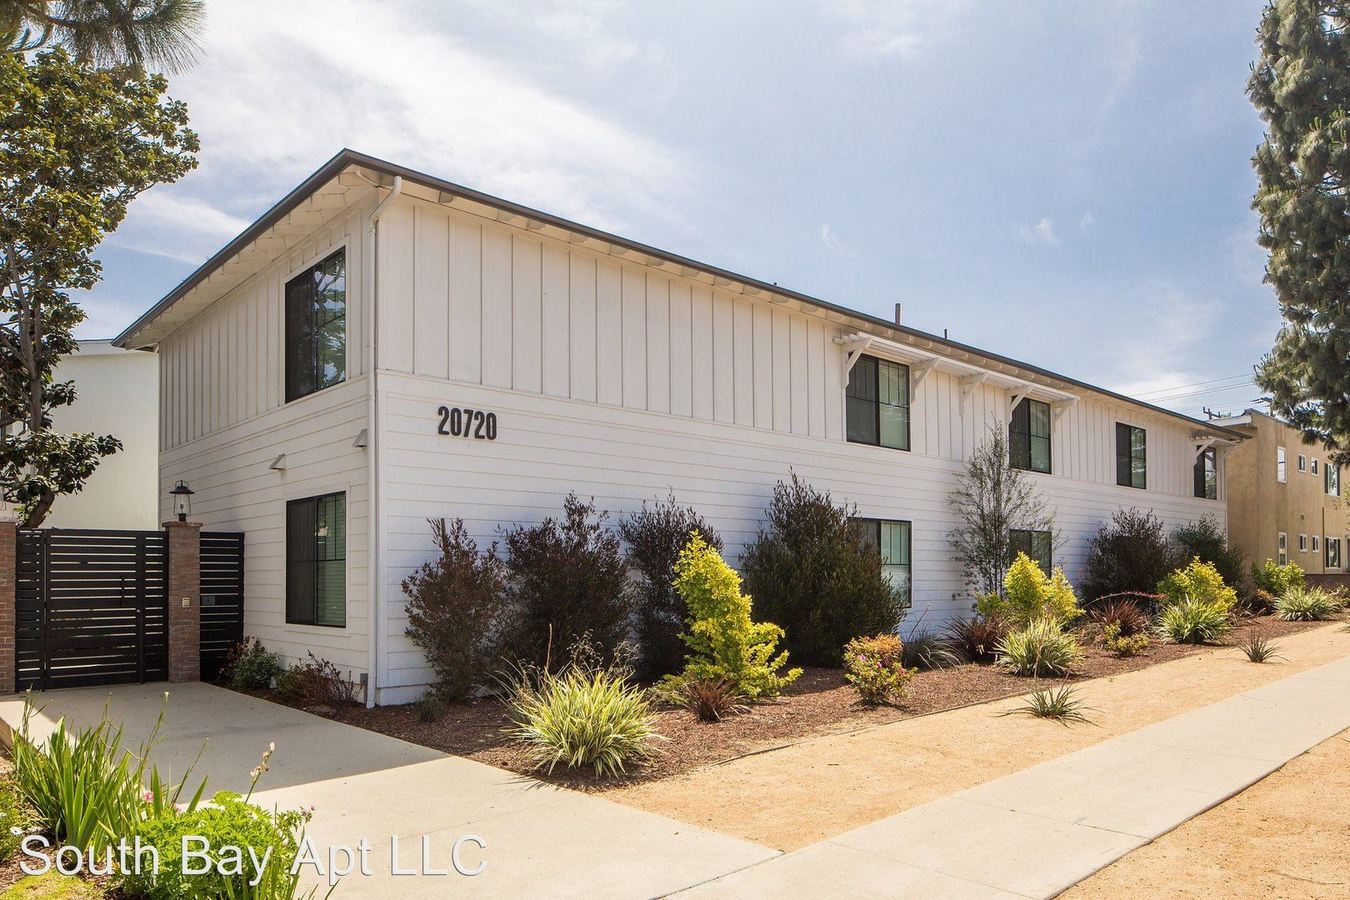 2 Bedrooms 1 Bathroom Apartment for rent at 20700-20720 Anza Ave in Torrance, CA